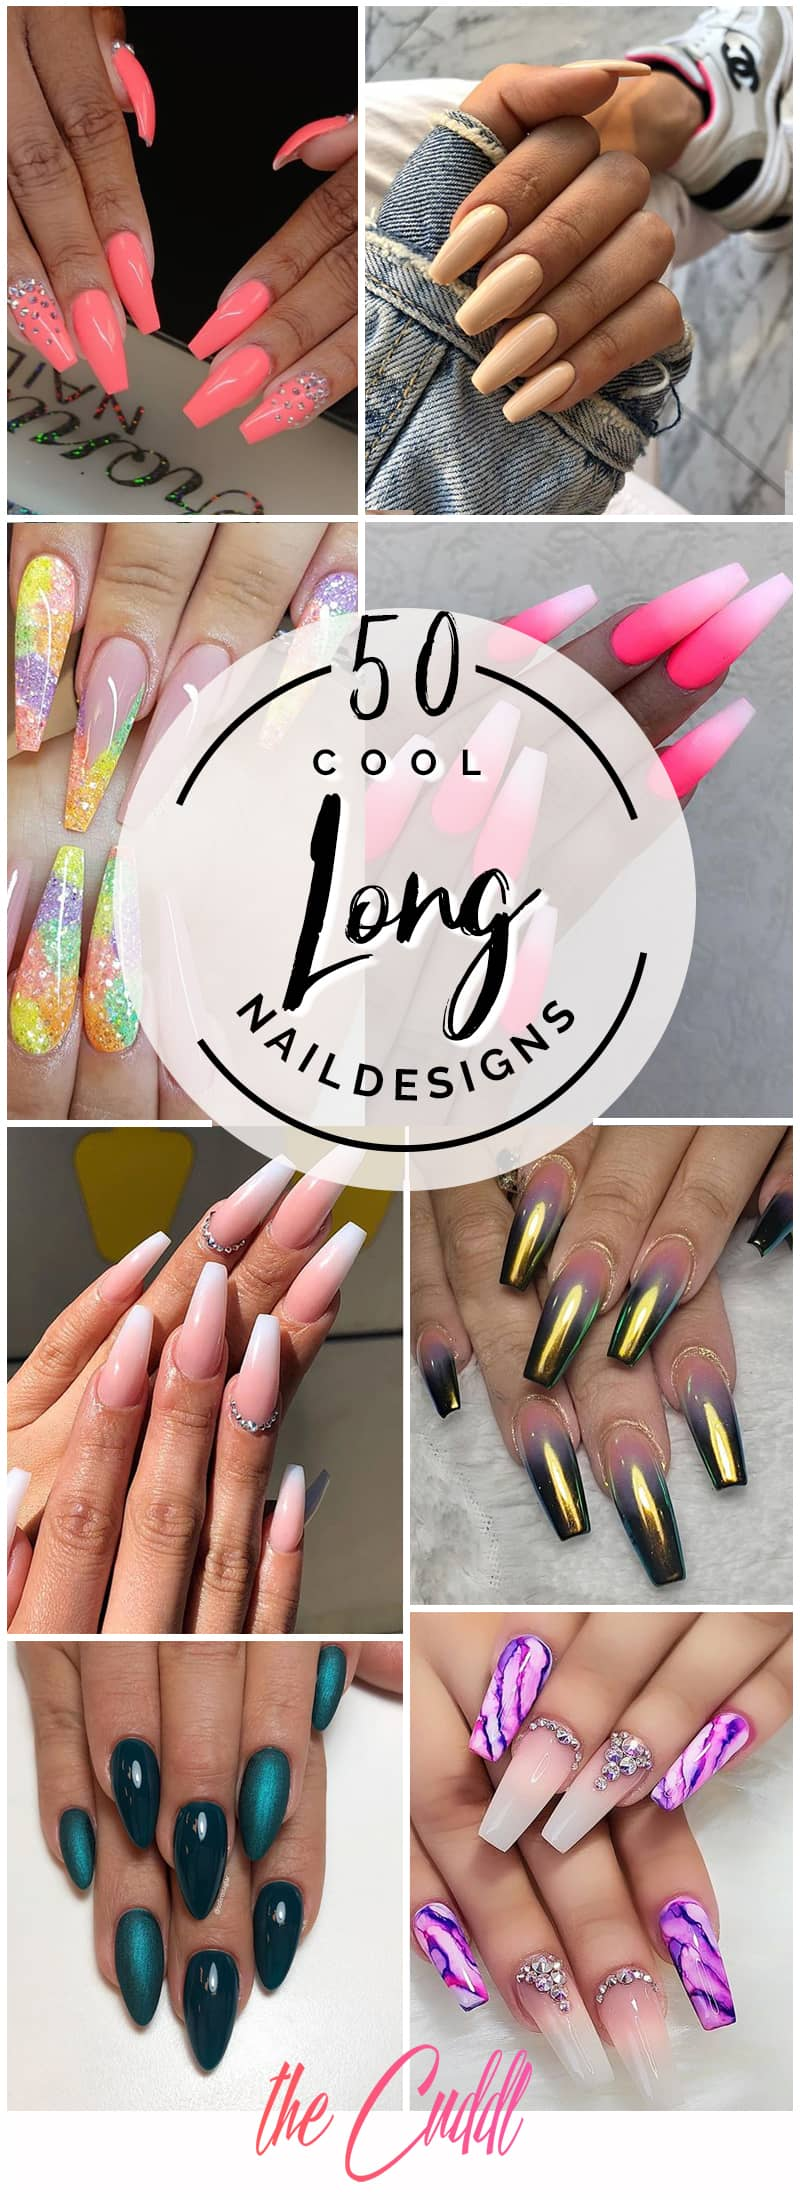 50 Cool Long Nail Designs that Are Easy to Create